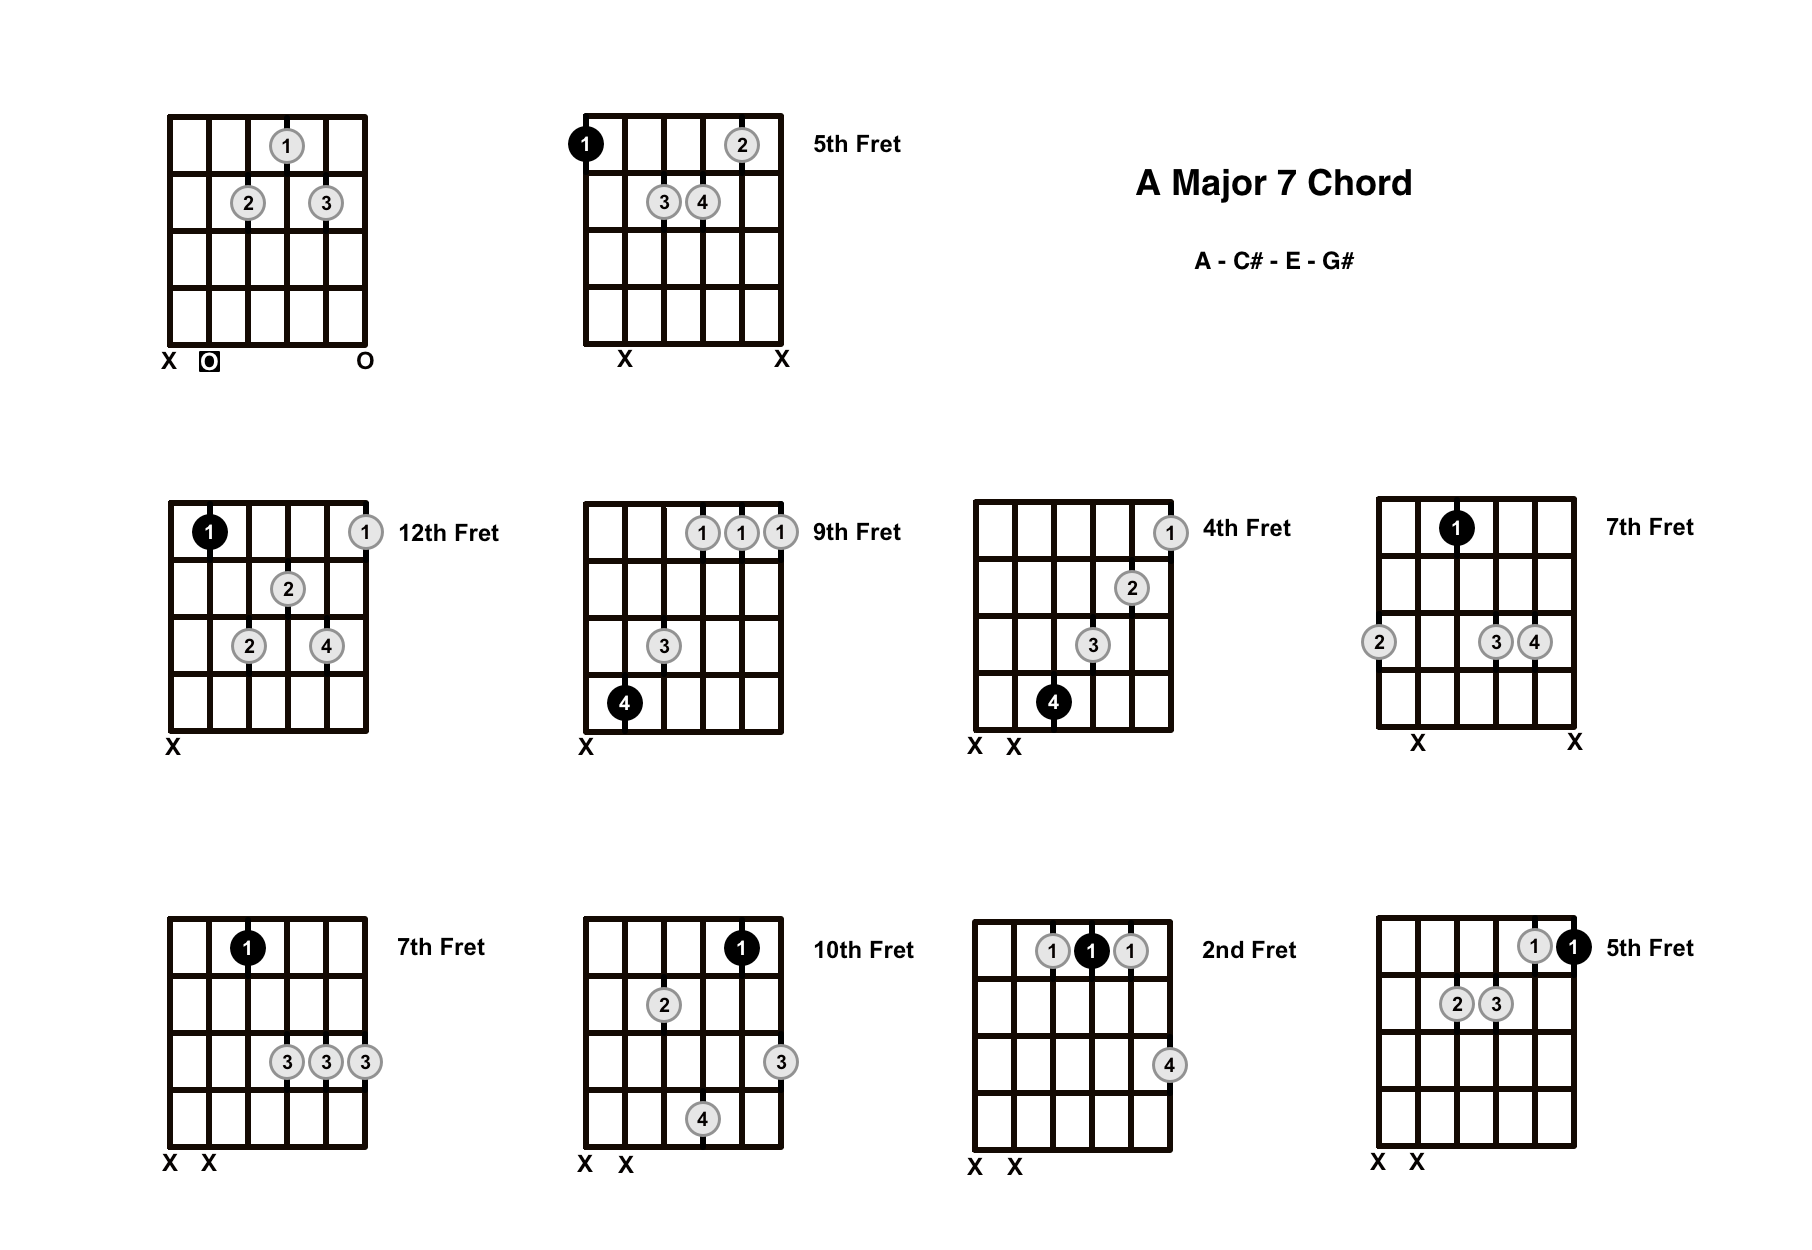 A Major 7 Chord On The Guitar (A Maj 7) – Diagrams, Finger Positions and Theory